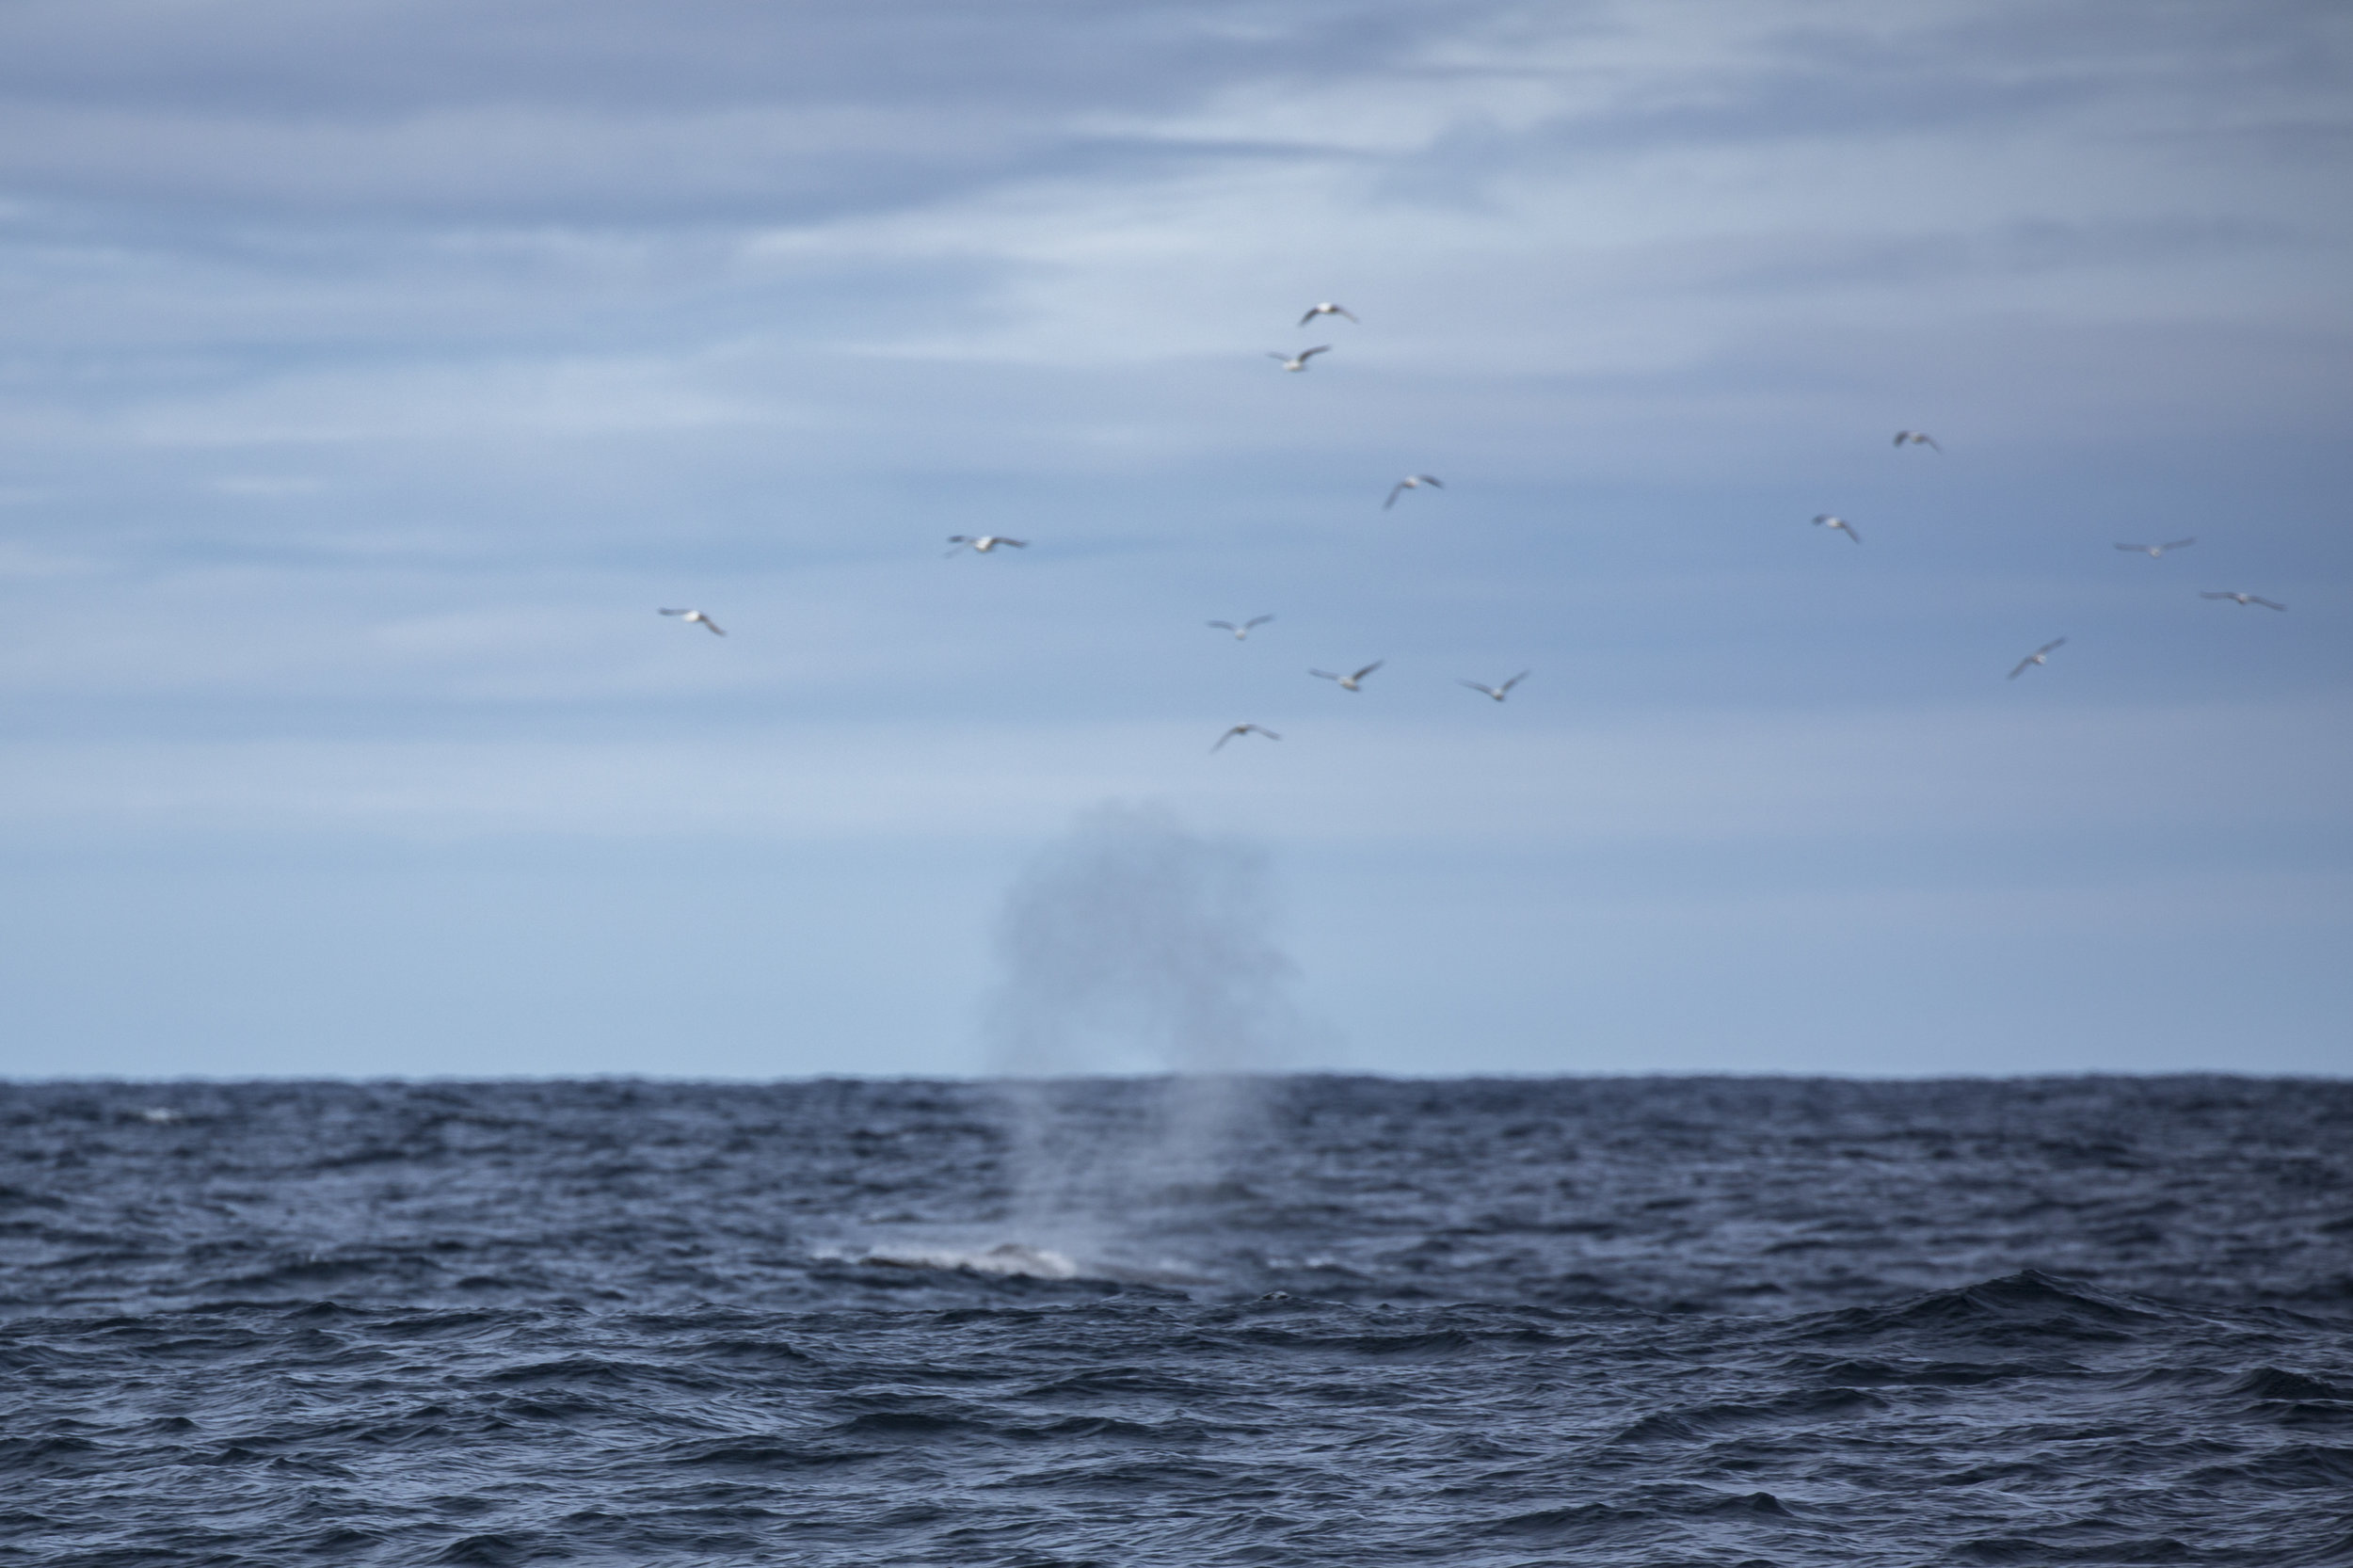 Thar she blows! We actually encountered this Fin Whale on the way to Svalbard last summer. I didn't have a photo of mom's birthday whale!